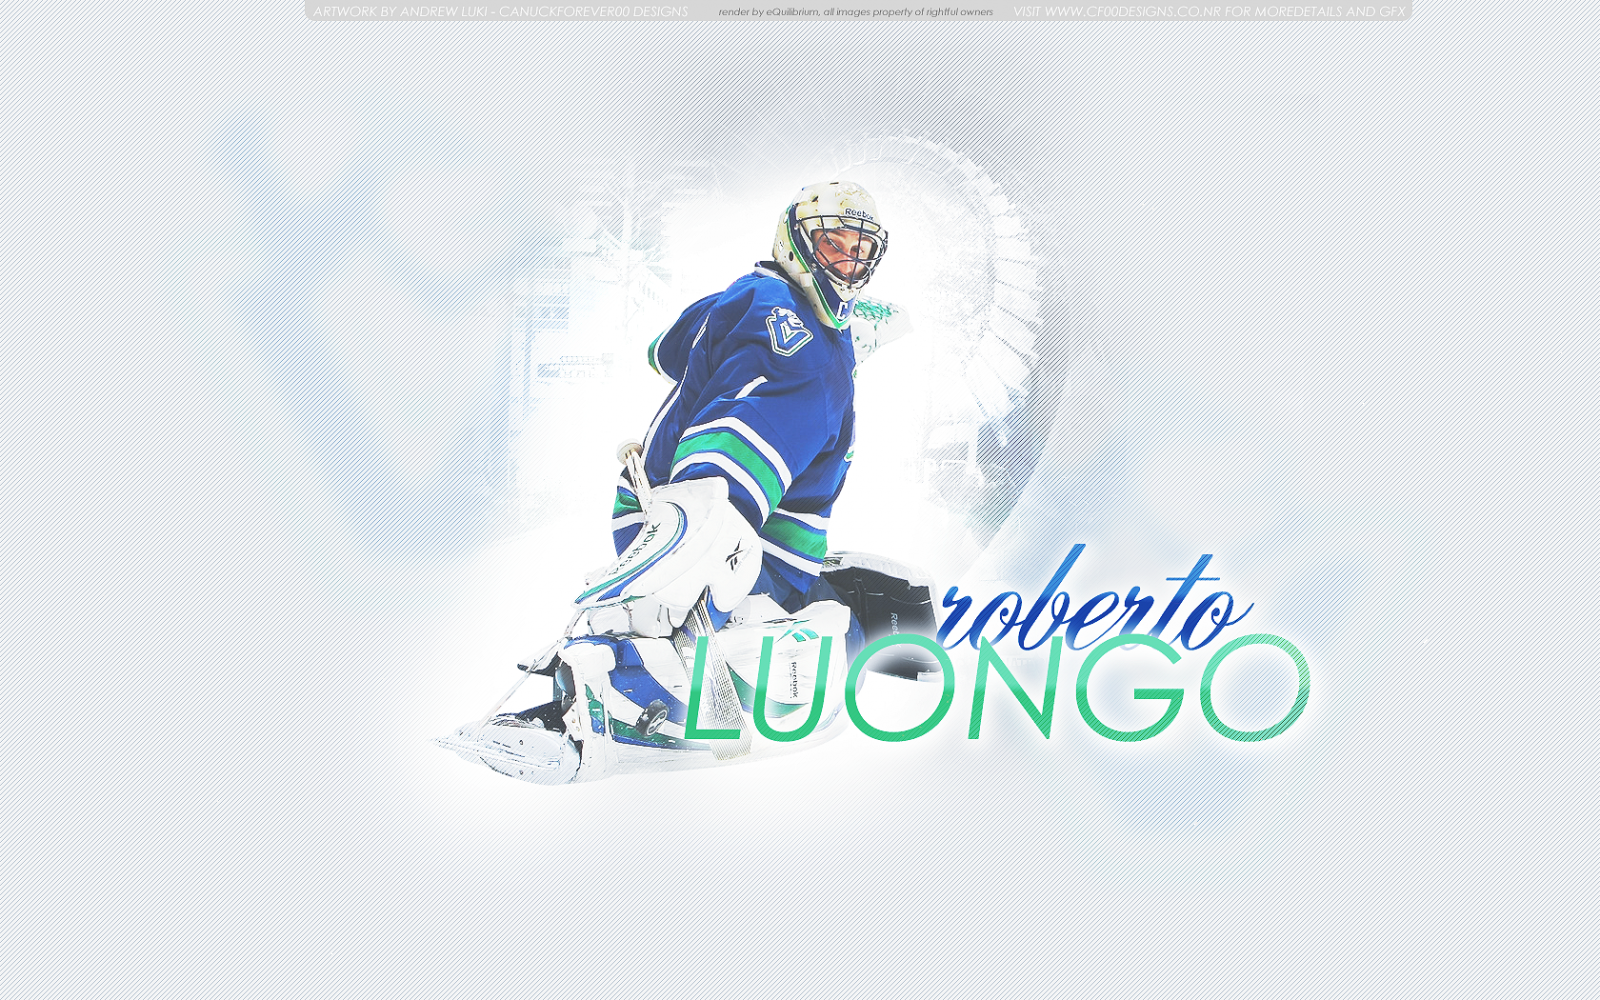 Roberto Luongo Wallpaper